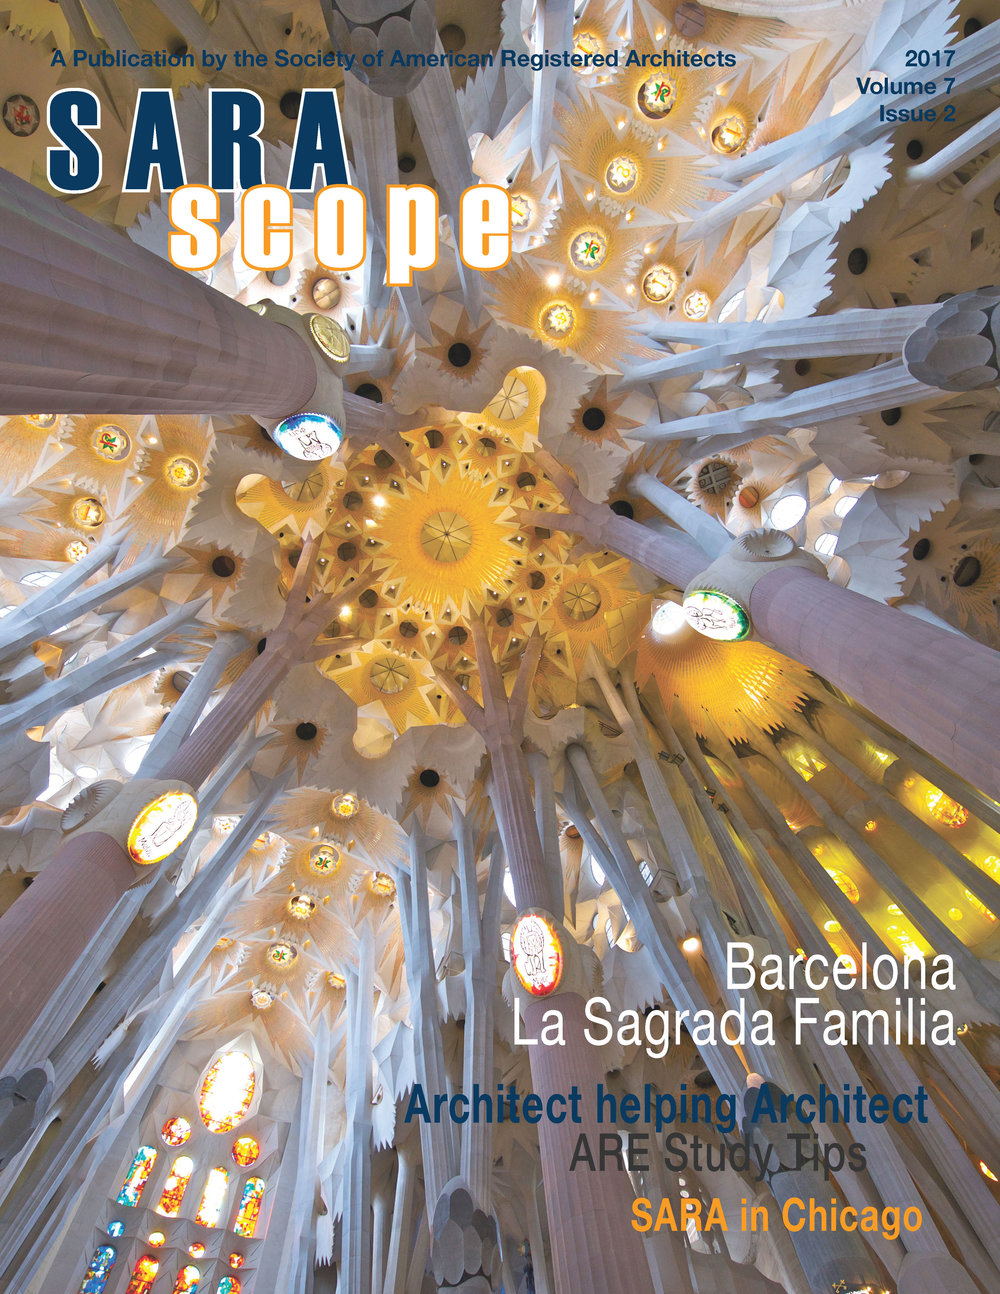 Latest Issue: 2-2017 - Download Issue 2-2017 of SARAscope here.